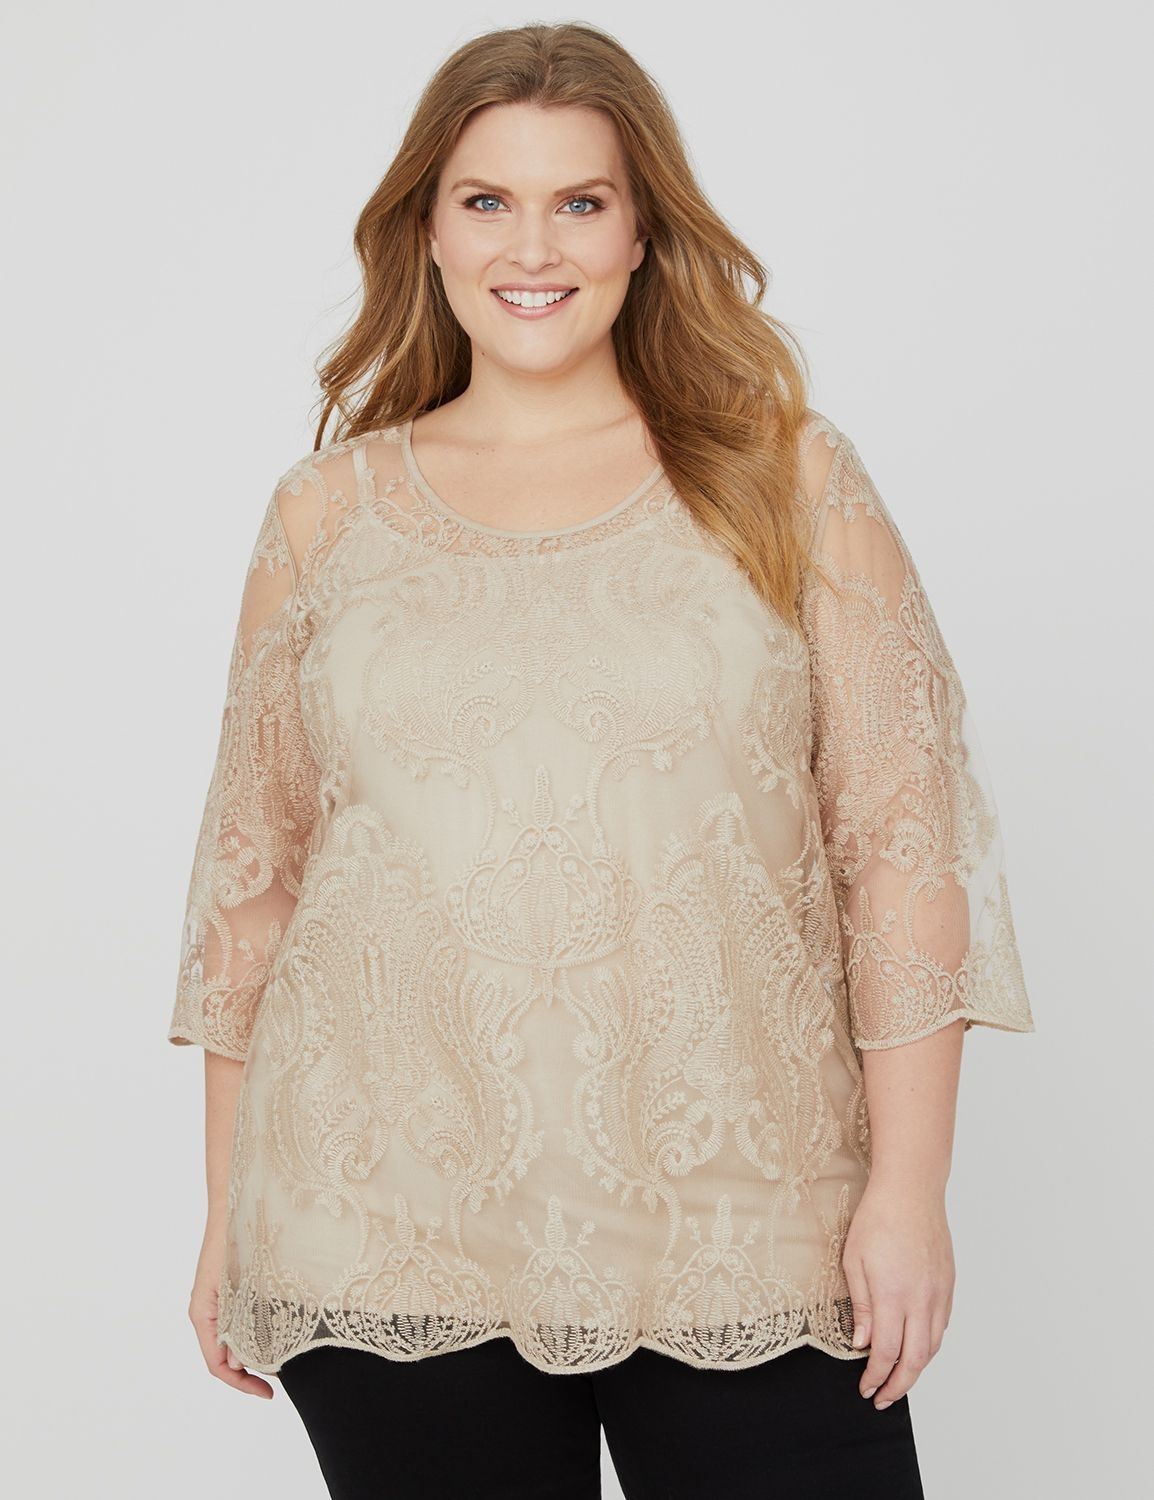 Soft Afterglow Top 1091394 Nuance Mesh Embroidered Tun MP-300103674